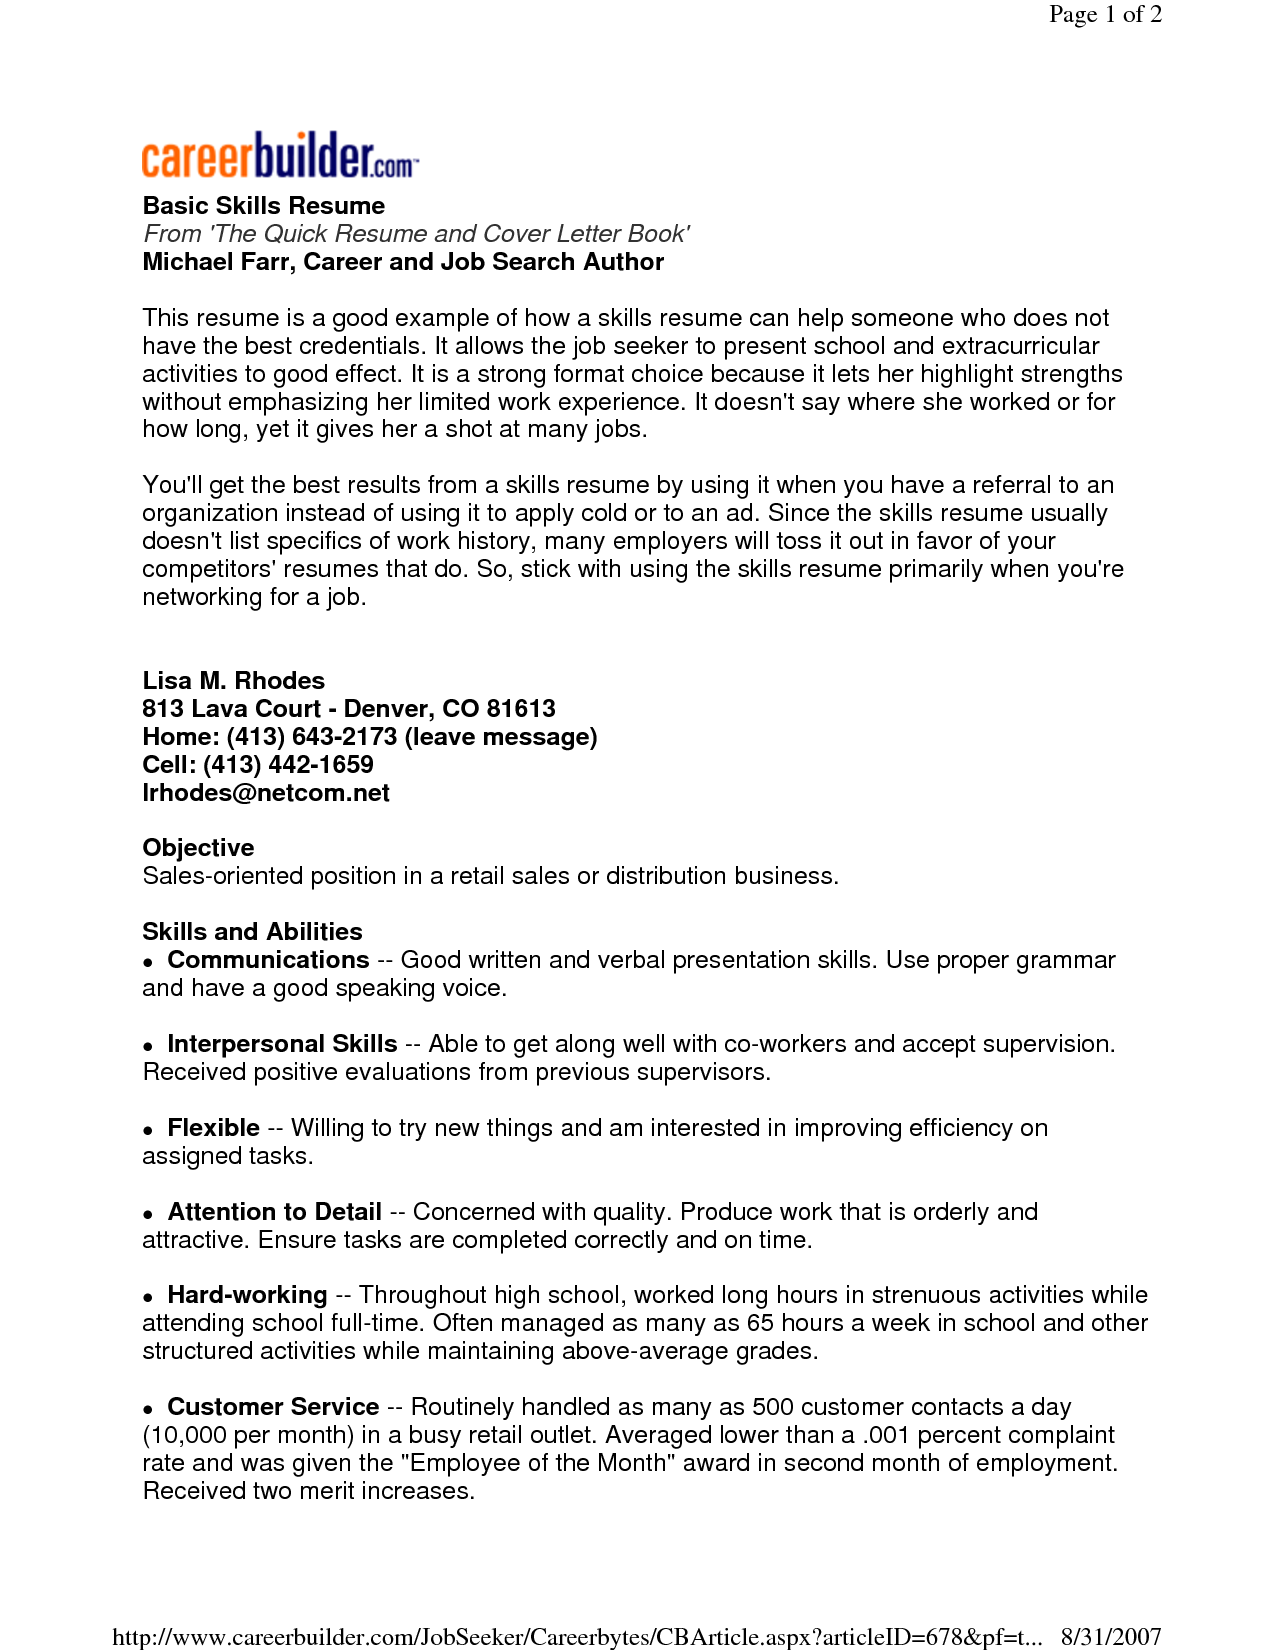 Resume Skills Examples Best Template Gallery Resume Skills